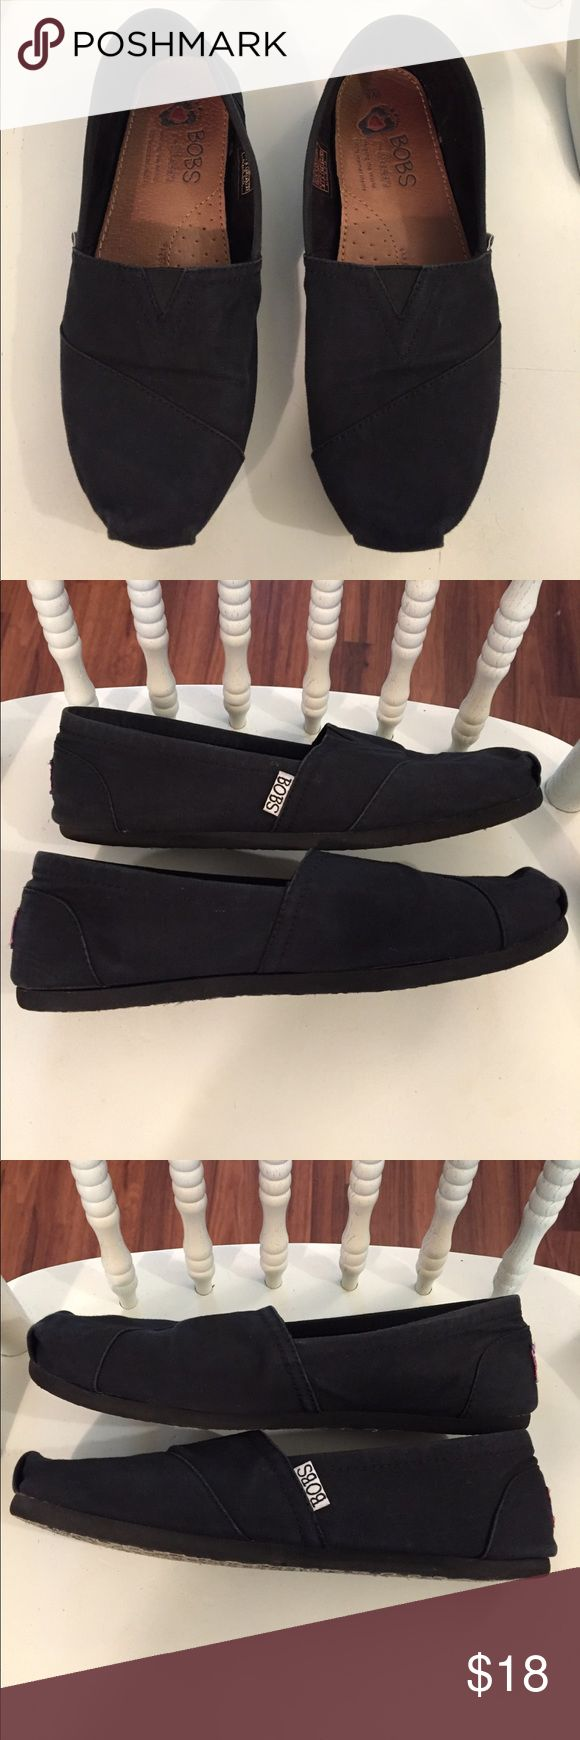 Black BOBS Shoes Black BOBS Shoes size 8 Women's. In great condition. Have been worn about 5 times but still have lots of life left. Goes with just about anything! BOBS Shoes Flats & Loafers